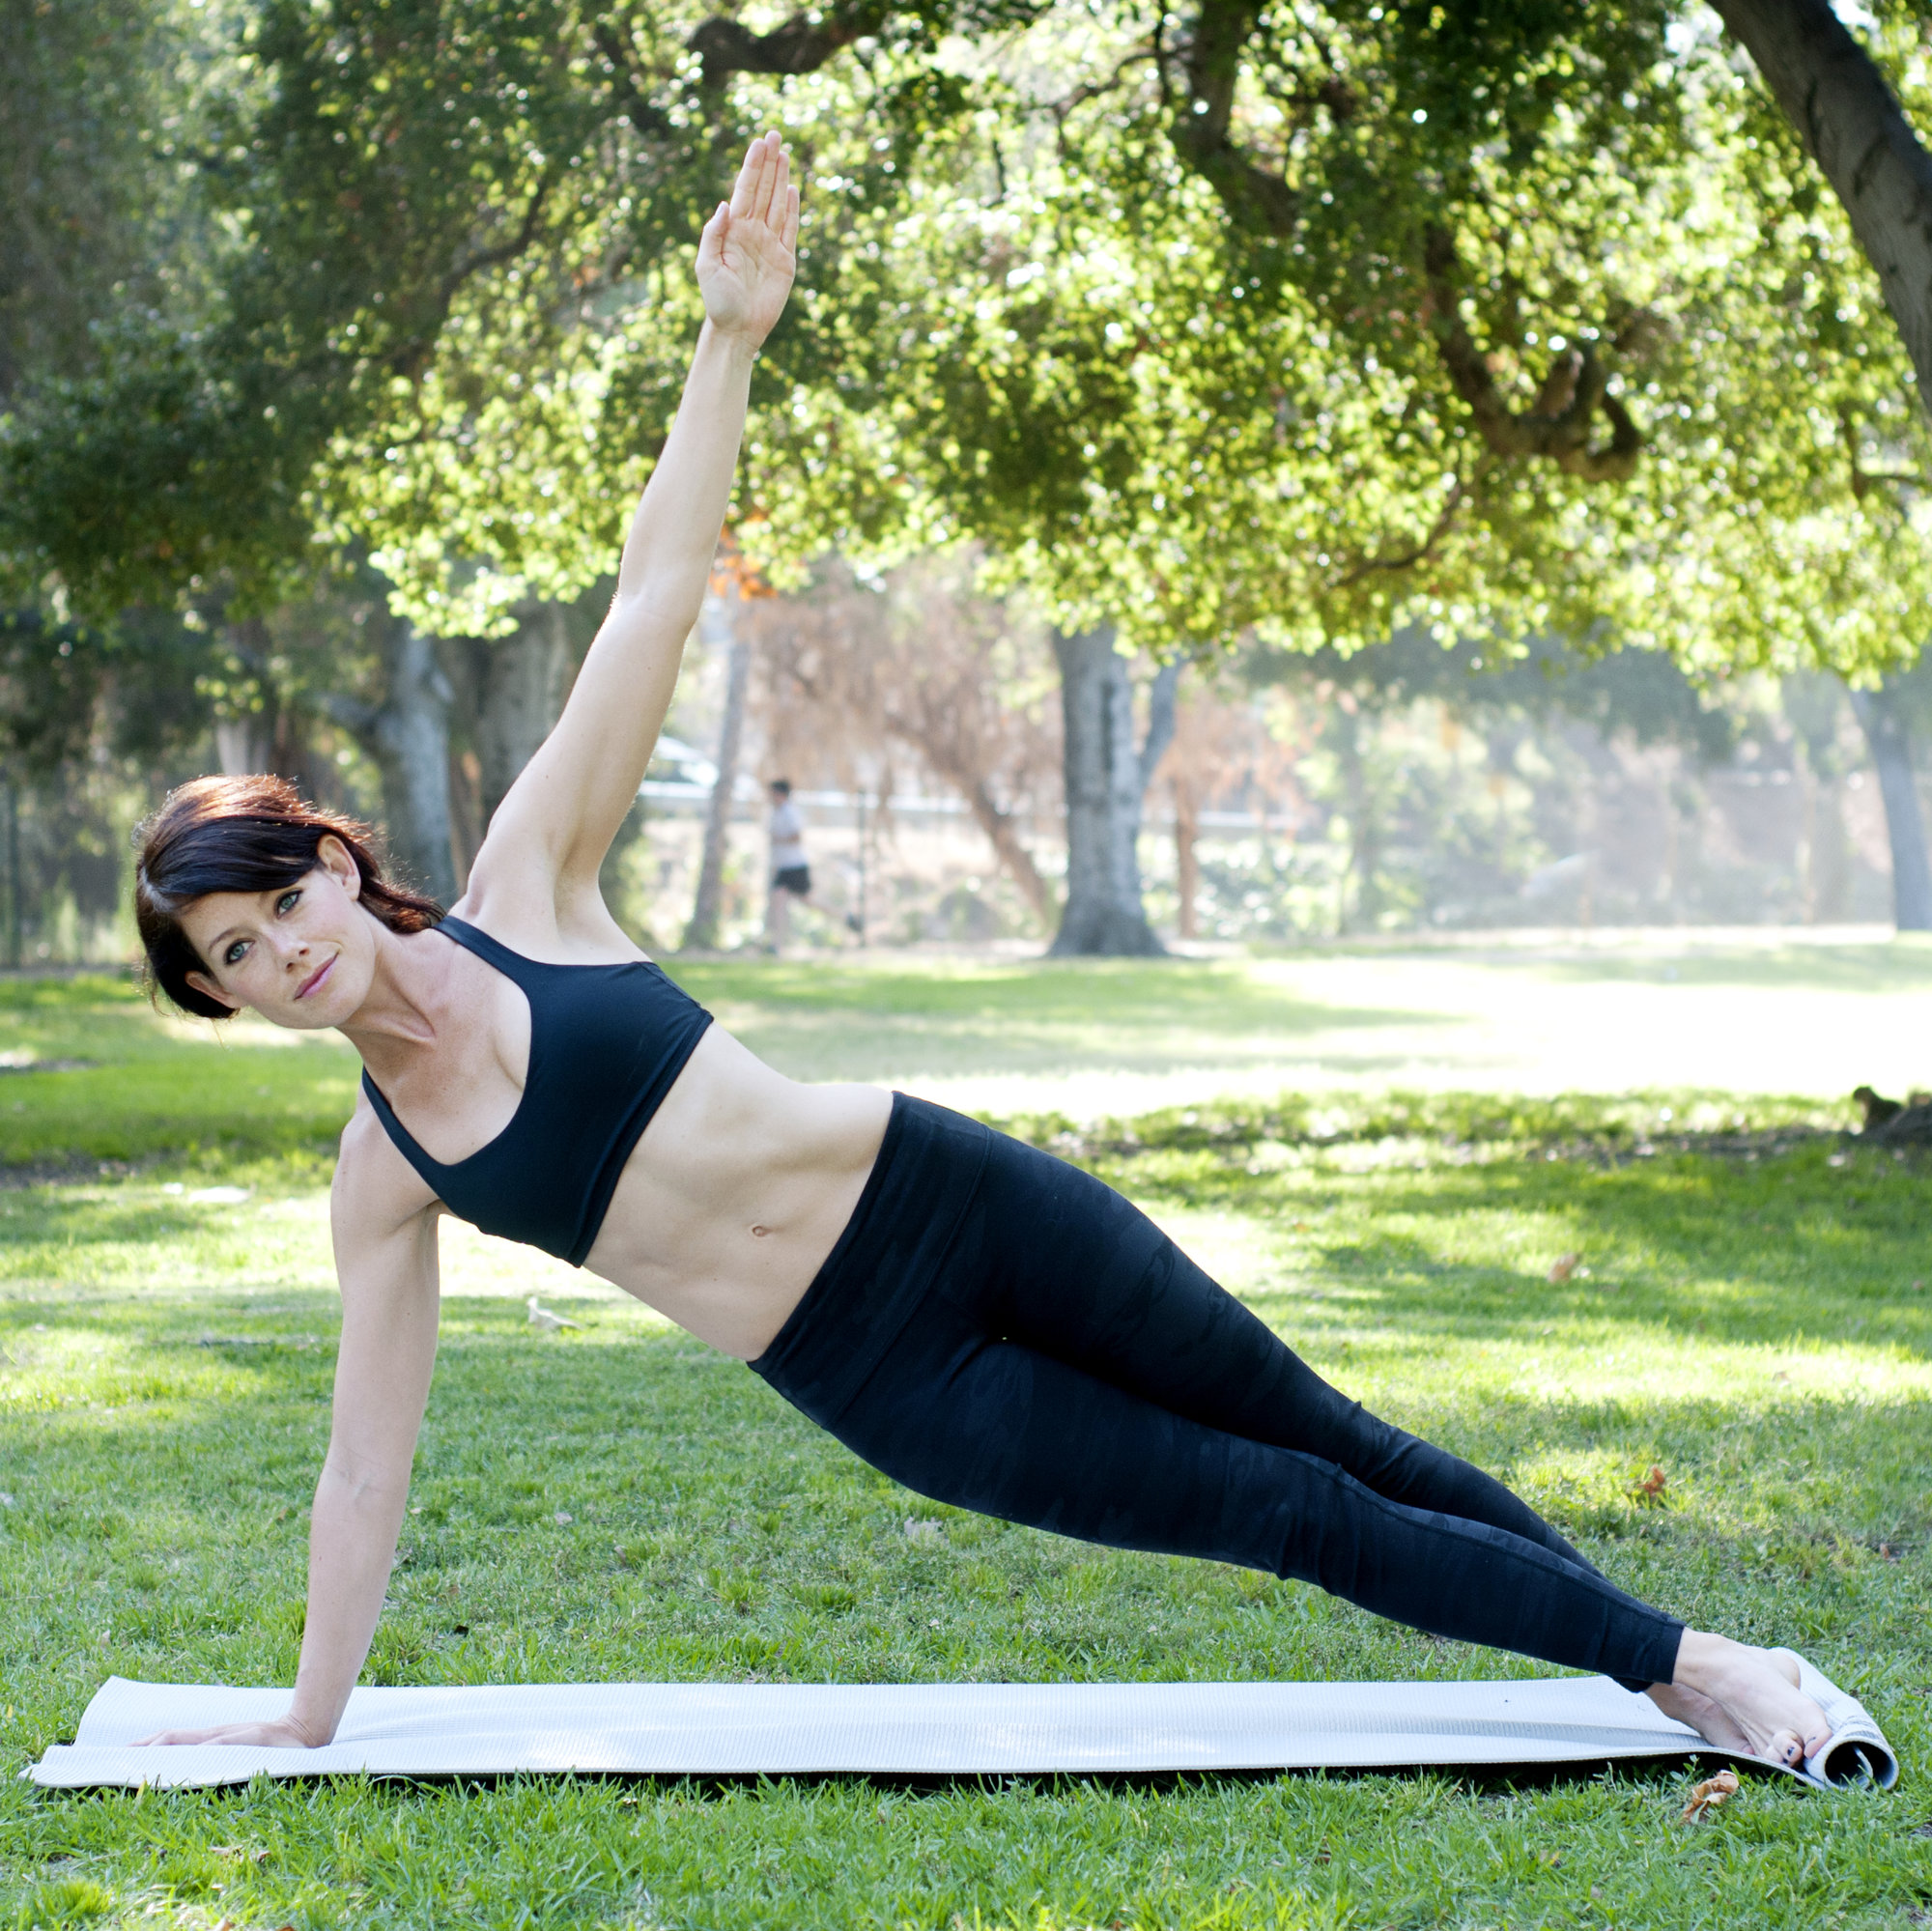 Pilates Mat Workout At Home: 5 At-Home Pilates Exercises Borrowed From The Reformer